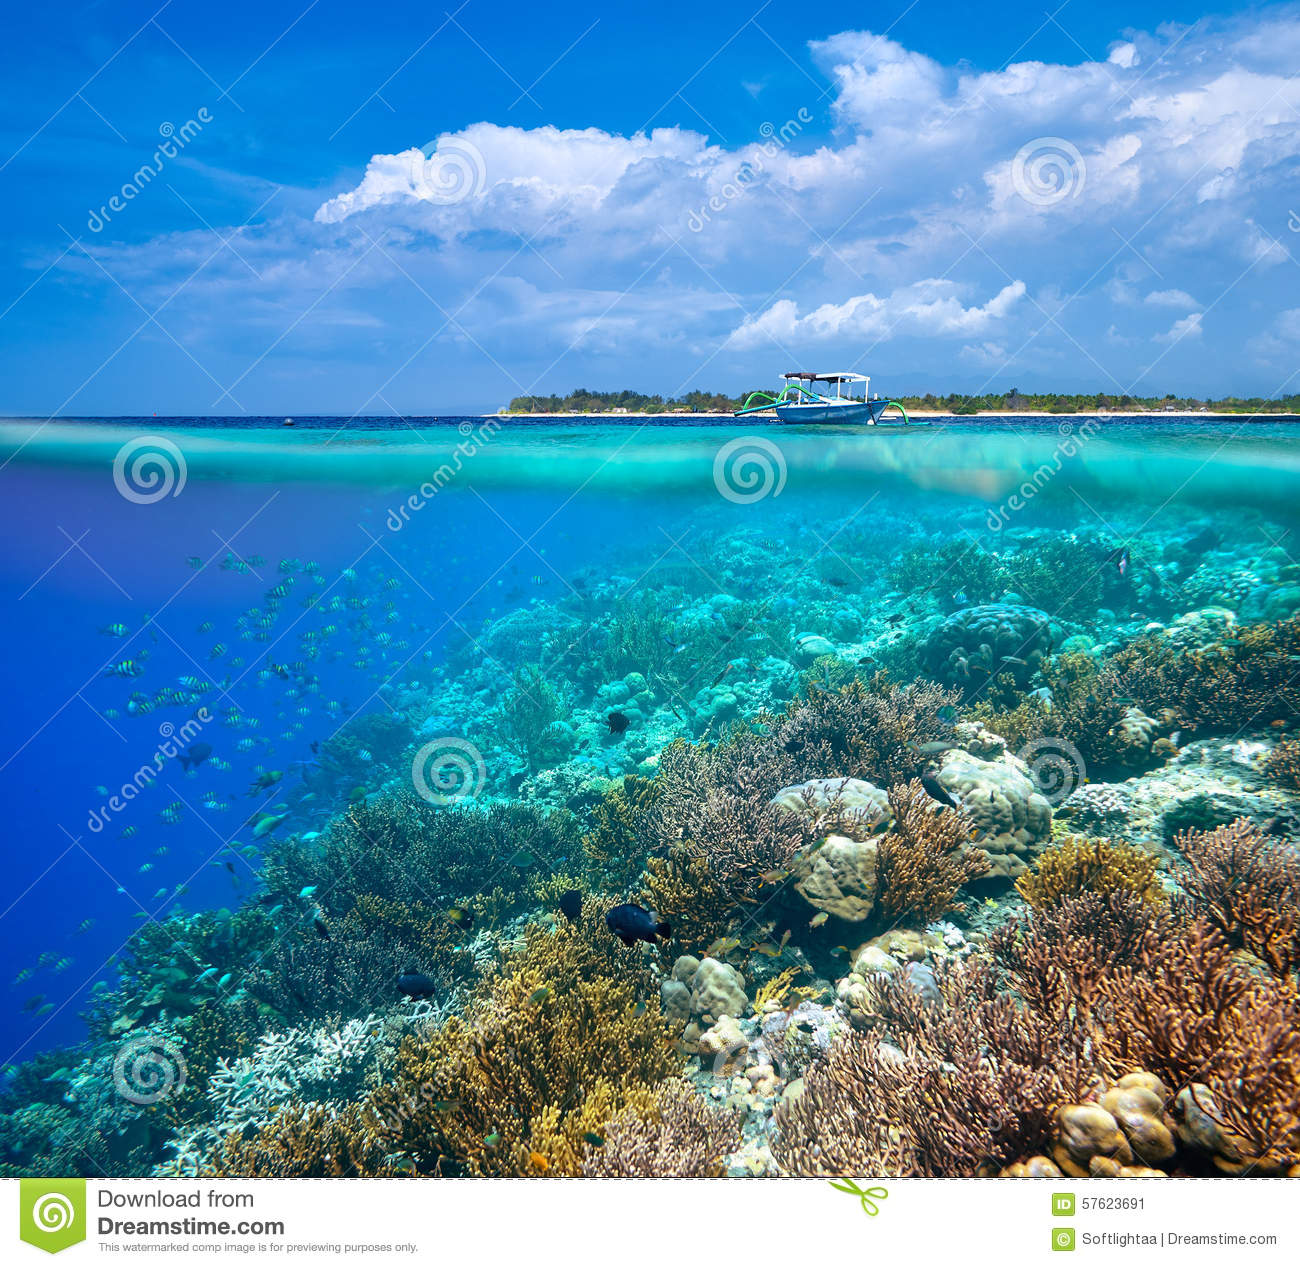 Coral Reef Background: A Woman Snorkeling Near The Beautiful Coral Reef With Lots